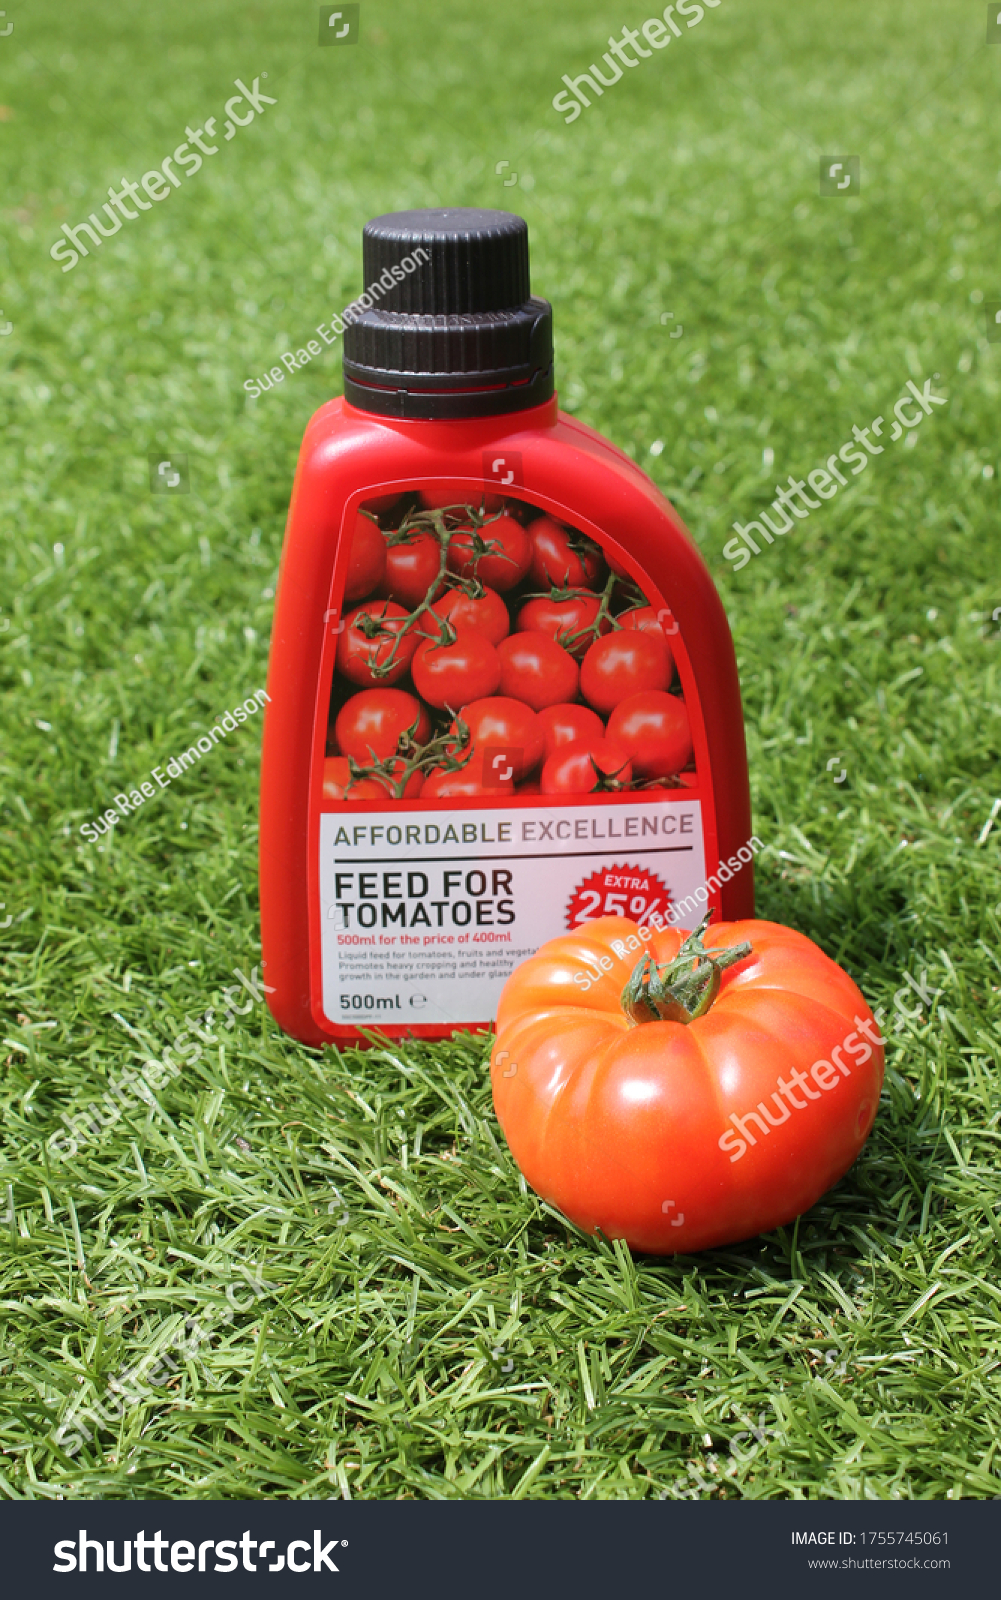 Up Holland, Lancashire, England 14/06/2020 Tomato feed and a large ripe tomato on a grass background